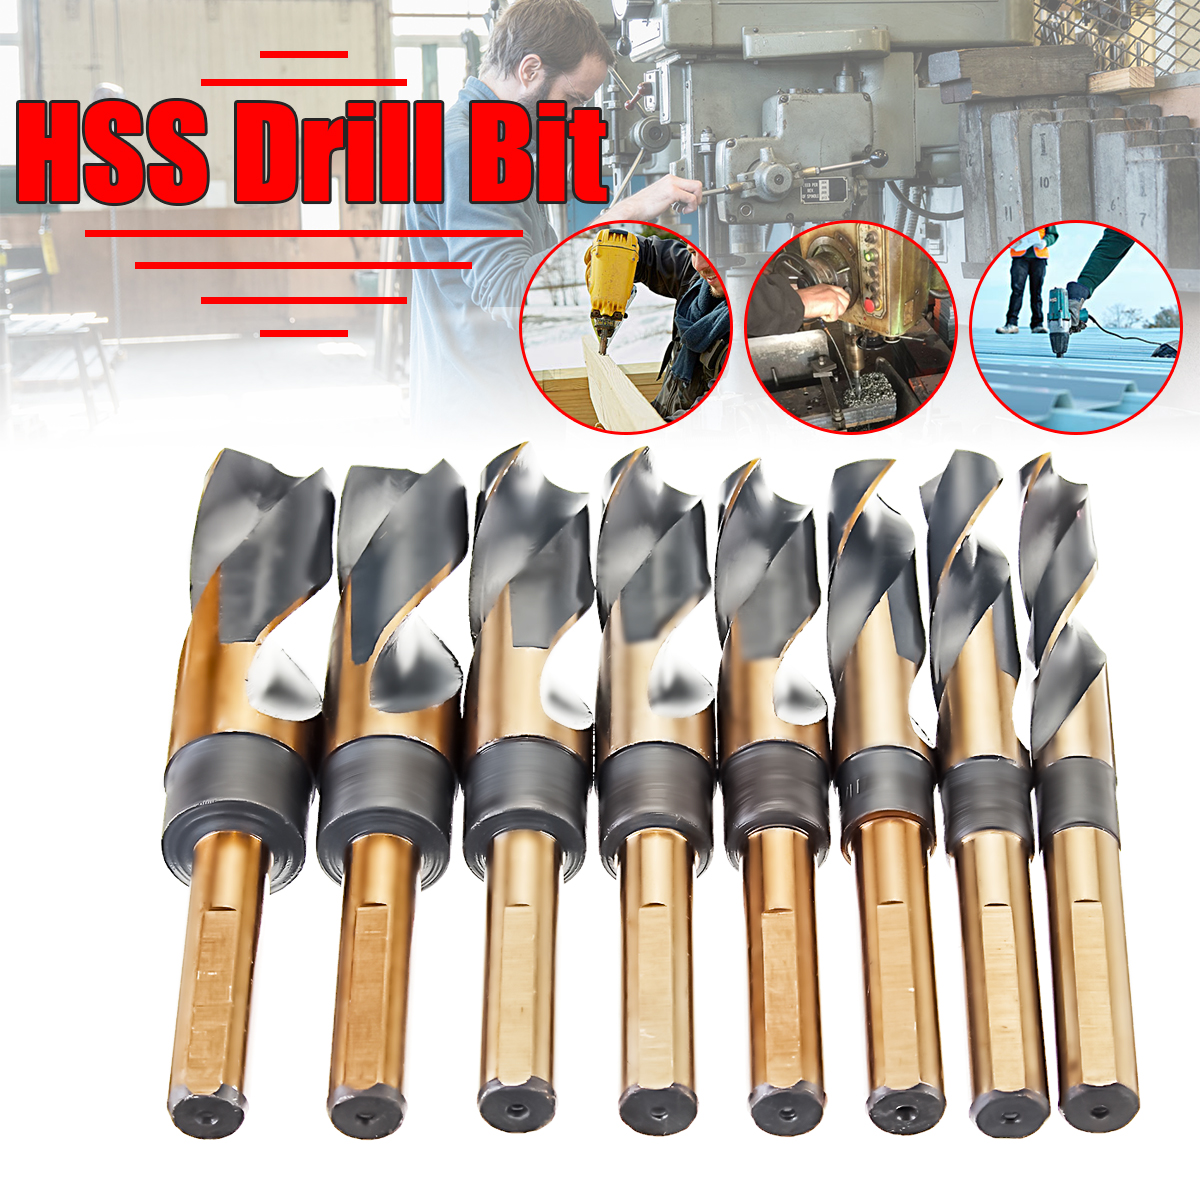 Drillpro 8Pcs 1/2 inch HSS Heavy Duty Reduced Shank Twist Drill Bit Set Stainless Coated Drill Bits Metal Metric Tools useful 17mm reduced 1 2 inch straigth shank electric hss twist drill bit tool